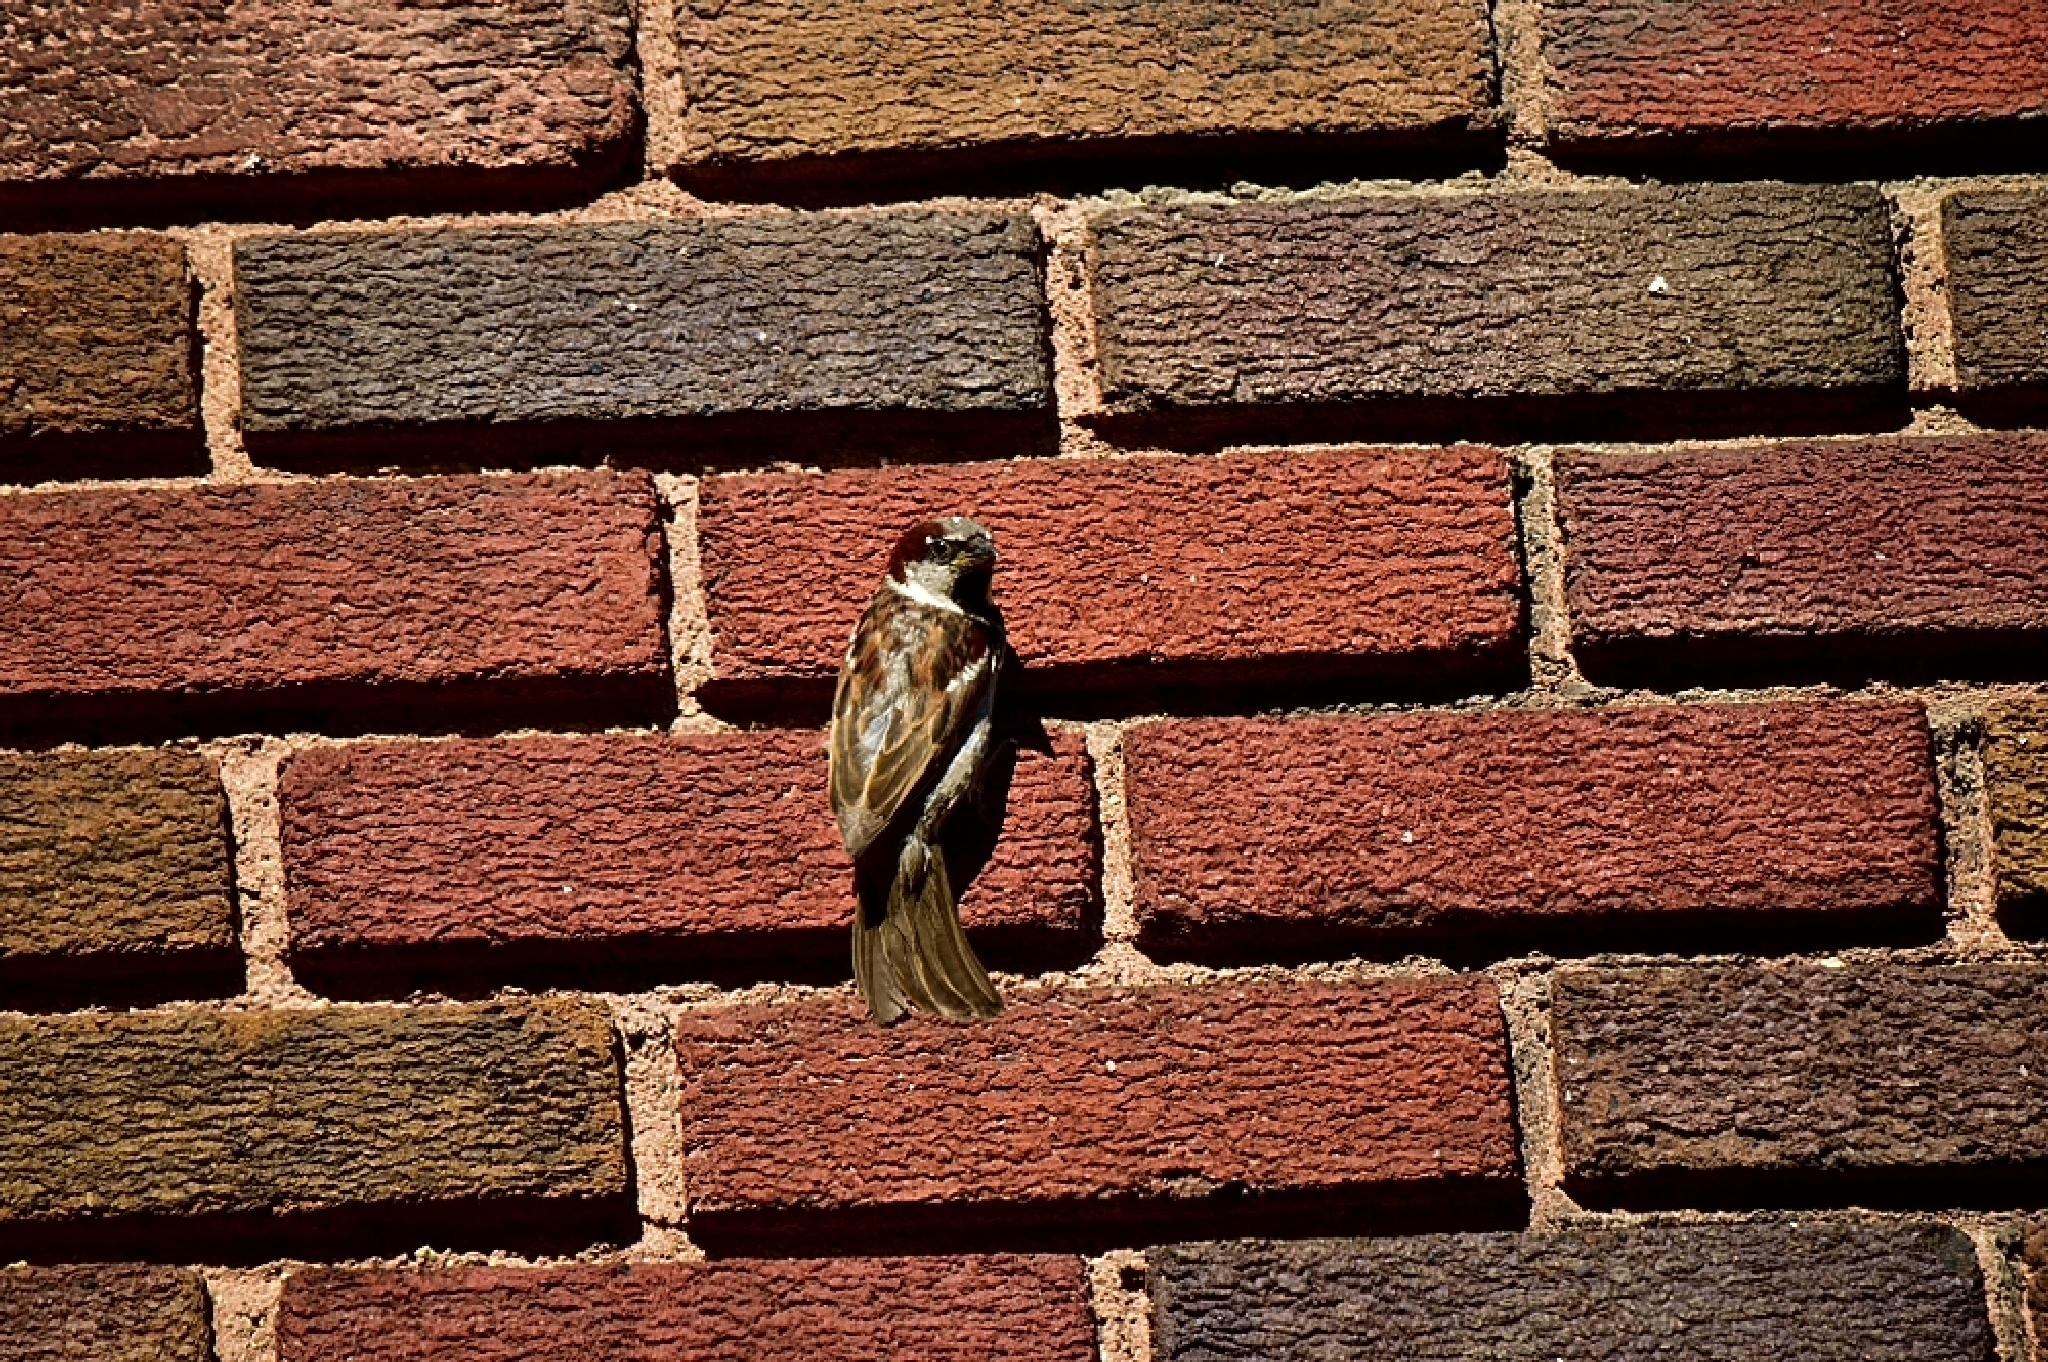 bird on the bricks by tim.hauser.73